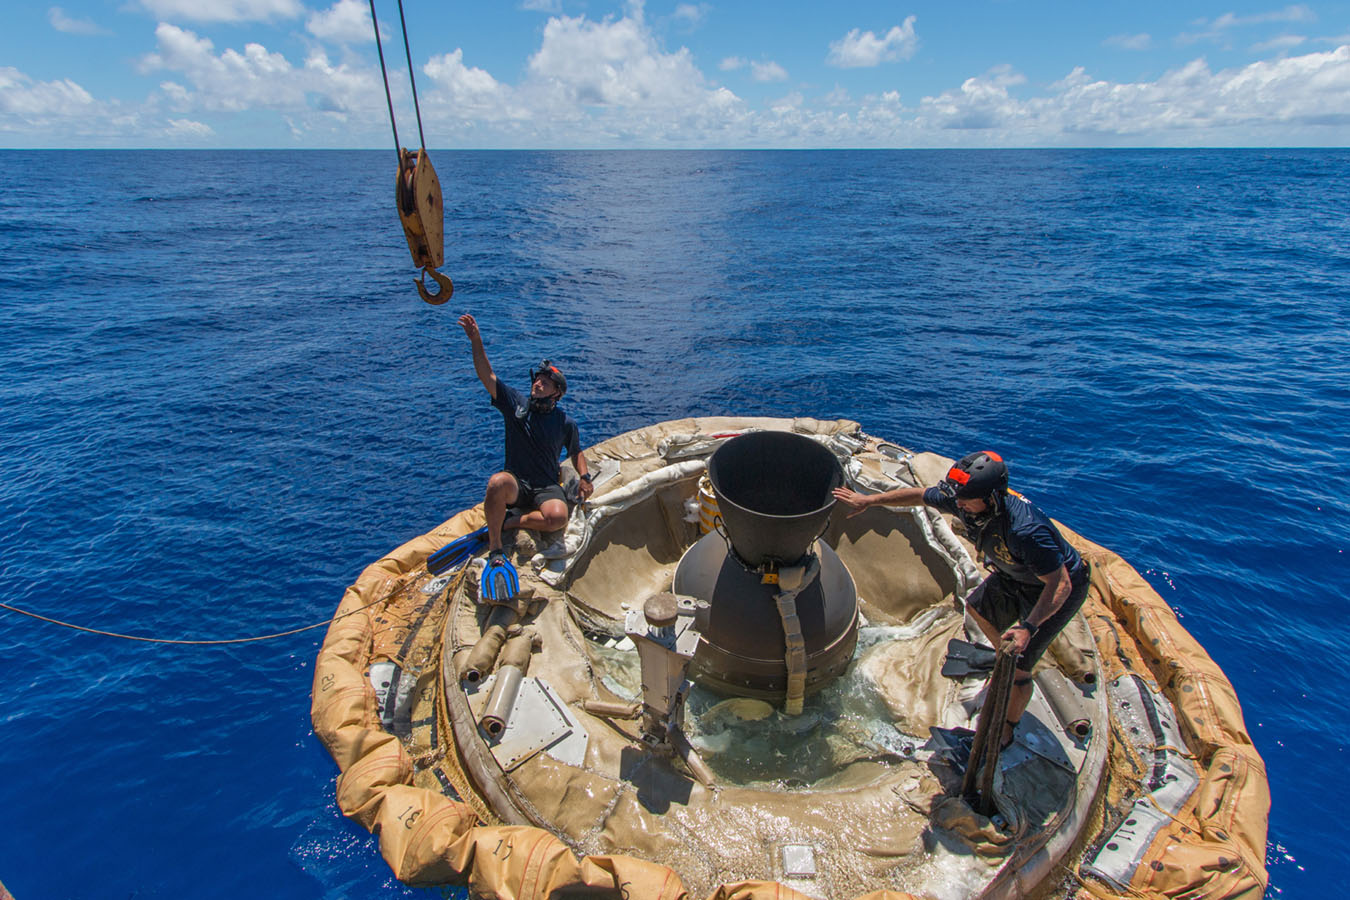 Divers retrieve the test vehicle for NASA's Low-Density Supersonic Decelerator off the coast of the U.S. Navy's Pacific Missile Range Facility in Kauai, Hawaii.